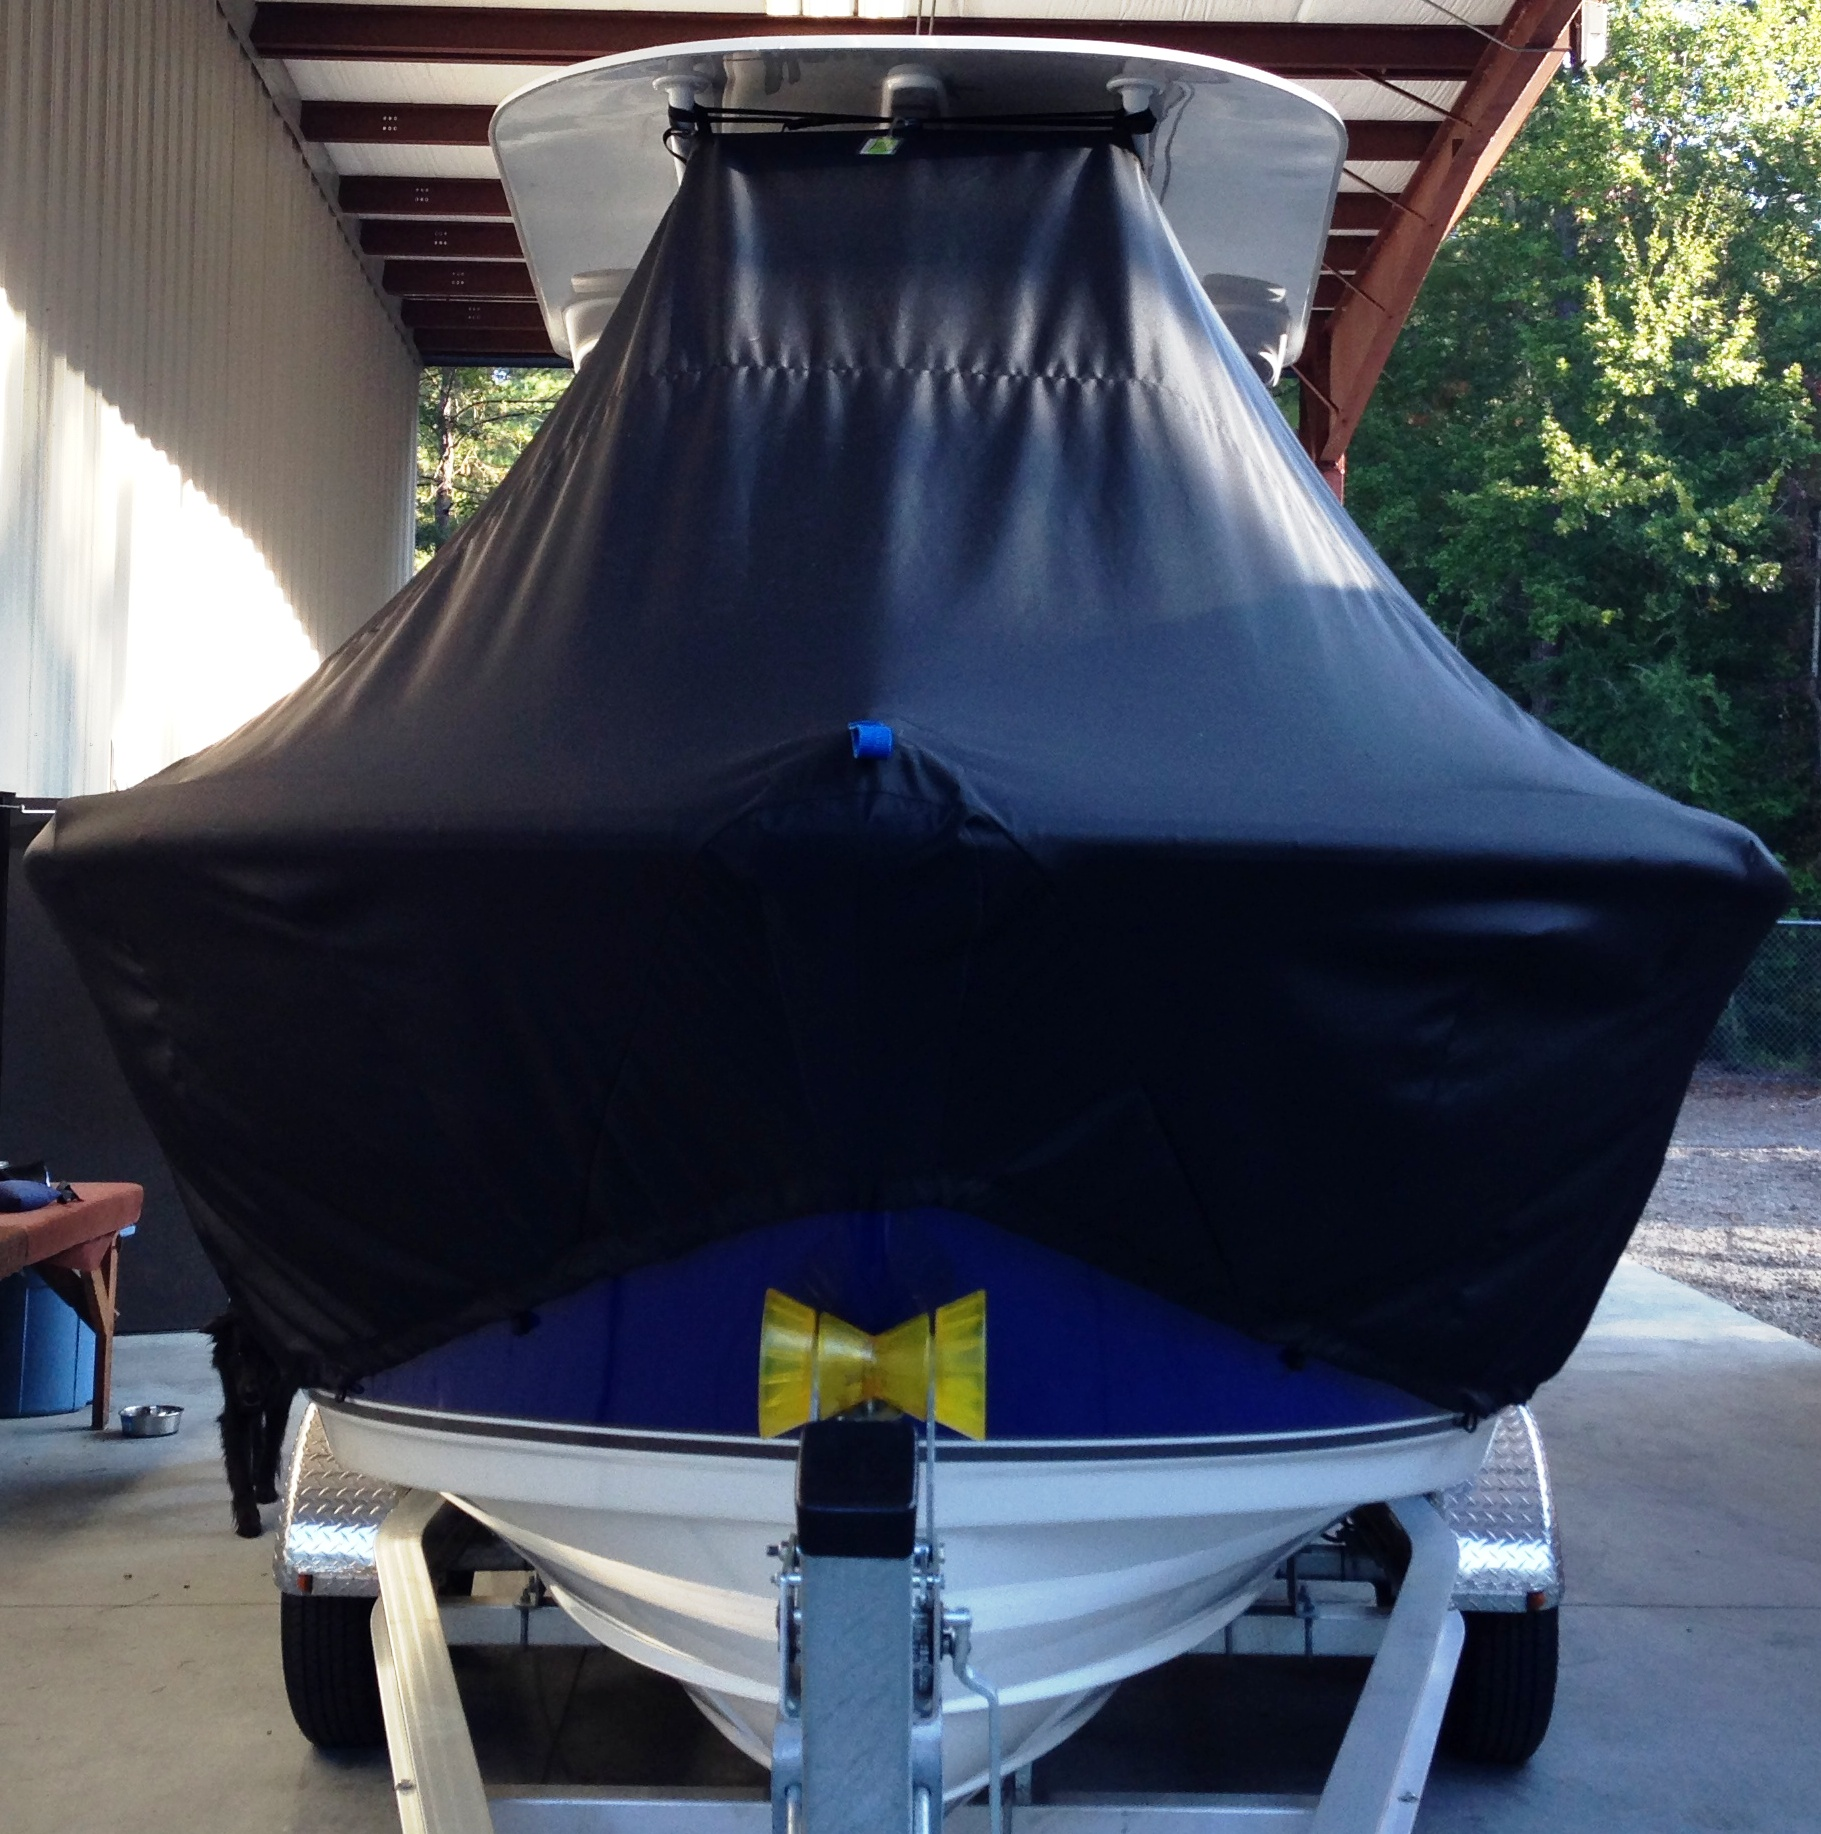 NauticStar 2200XS Offshore, 20xx, TTopCovers™ T-Top boat cover front